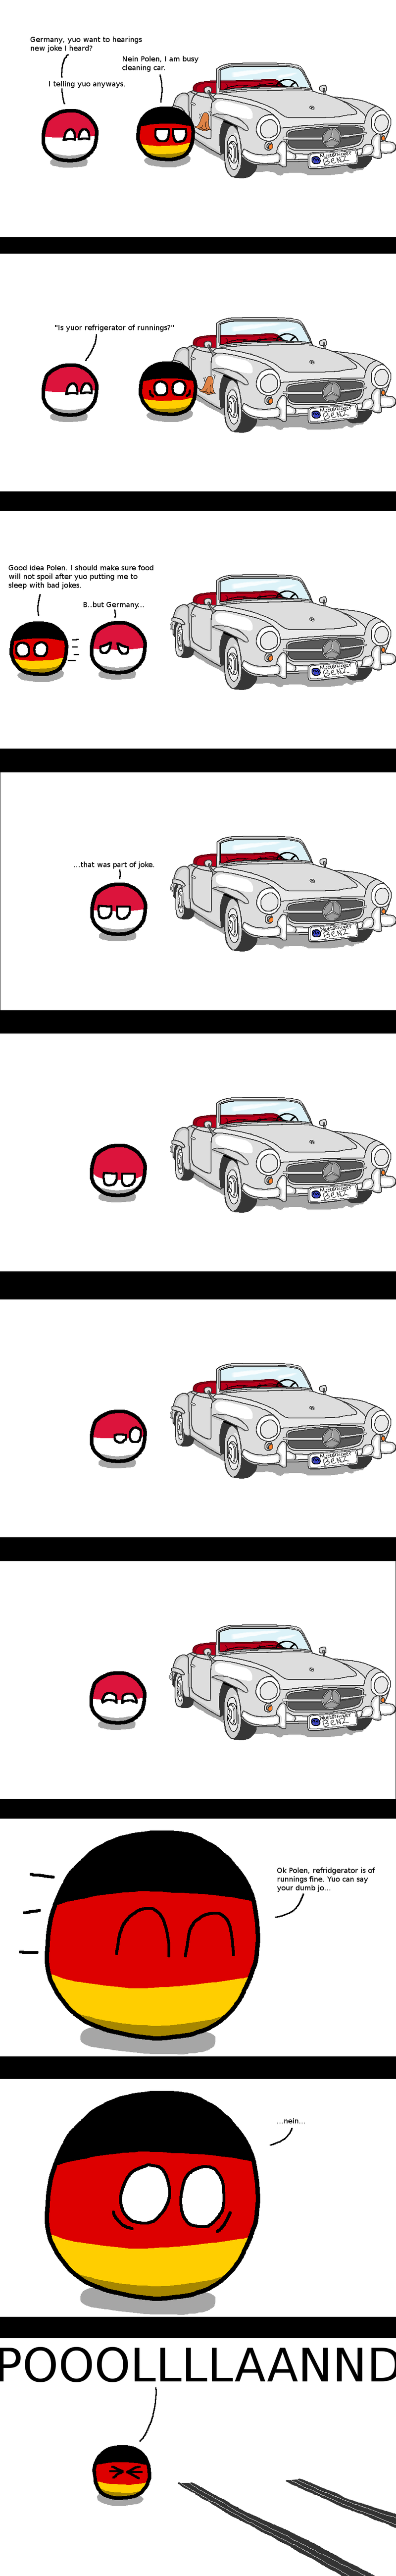 Illustration for article titled Daily Polandball: Grand Theft Auto Edition